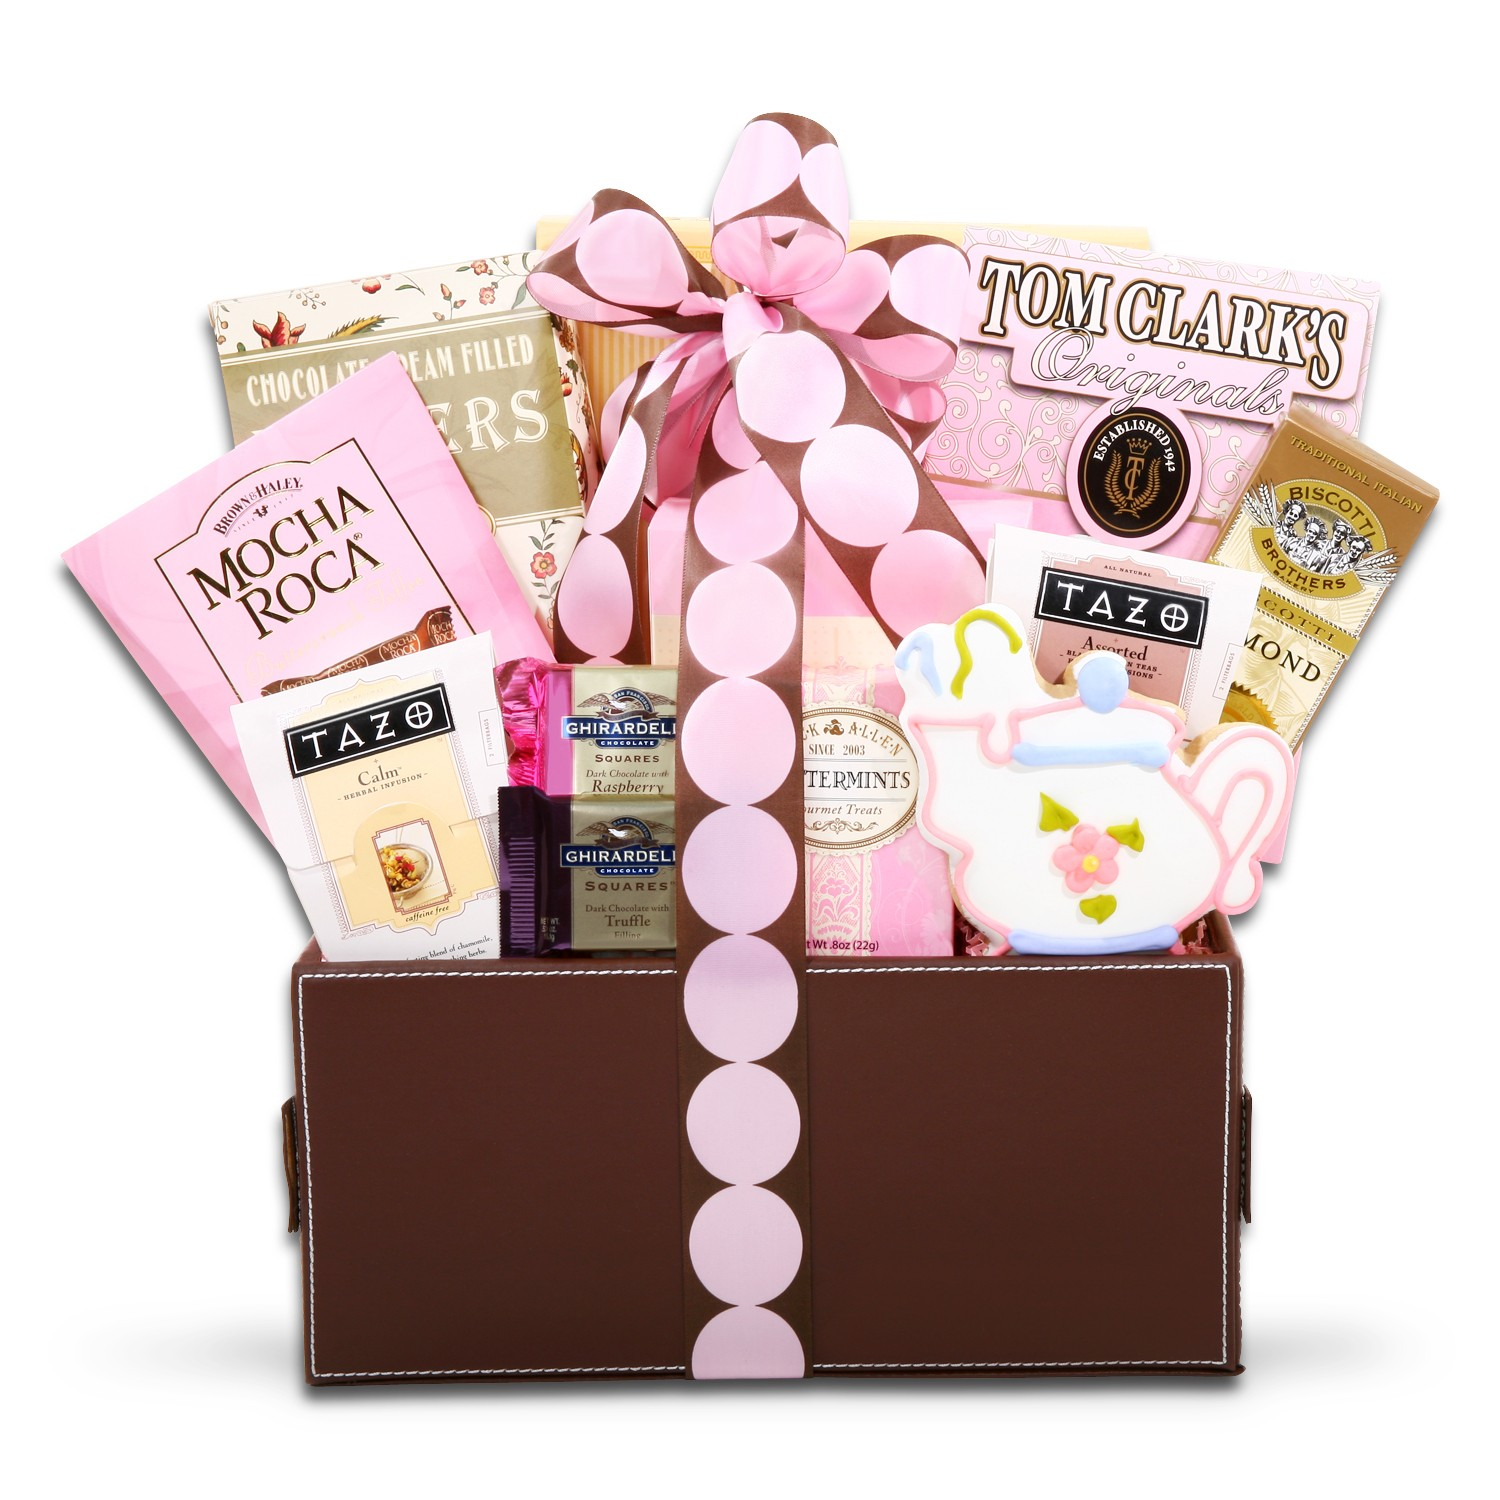 I love you Mom - GiftBasketsPlus.com Suggests Creative Gift baskets for Motheru0027s Day  sc 1 st  Online Press Release Distribution Service & I love you Mom - GiftBasketsPlus.com Suggests Creative Gift baskets ...